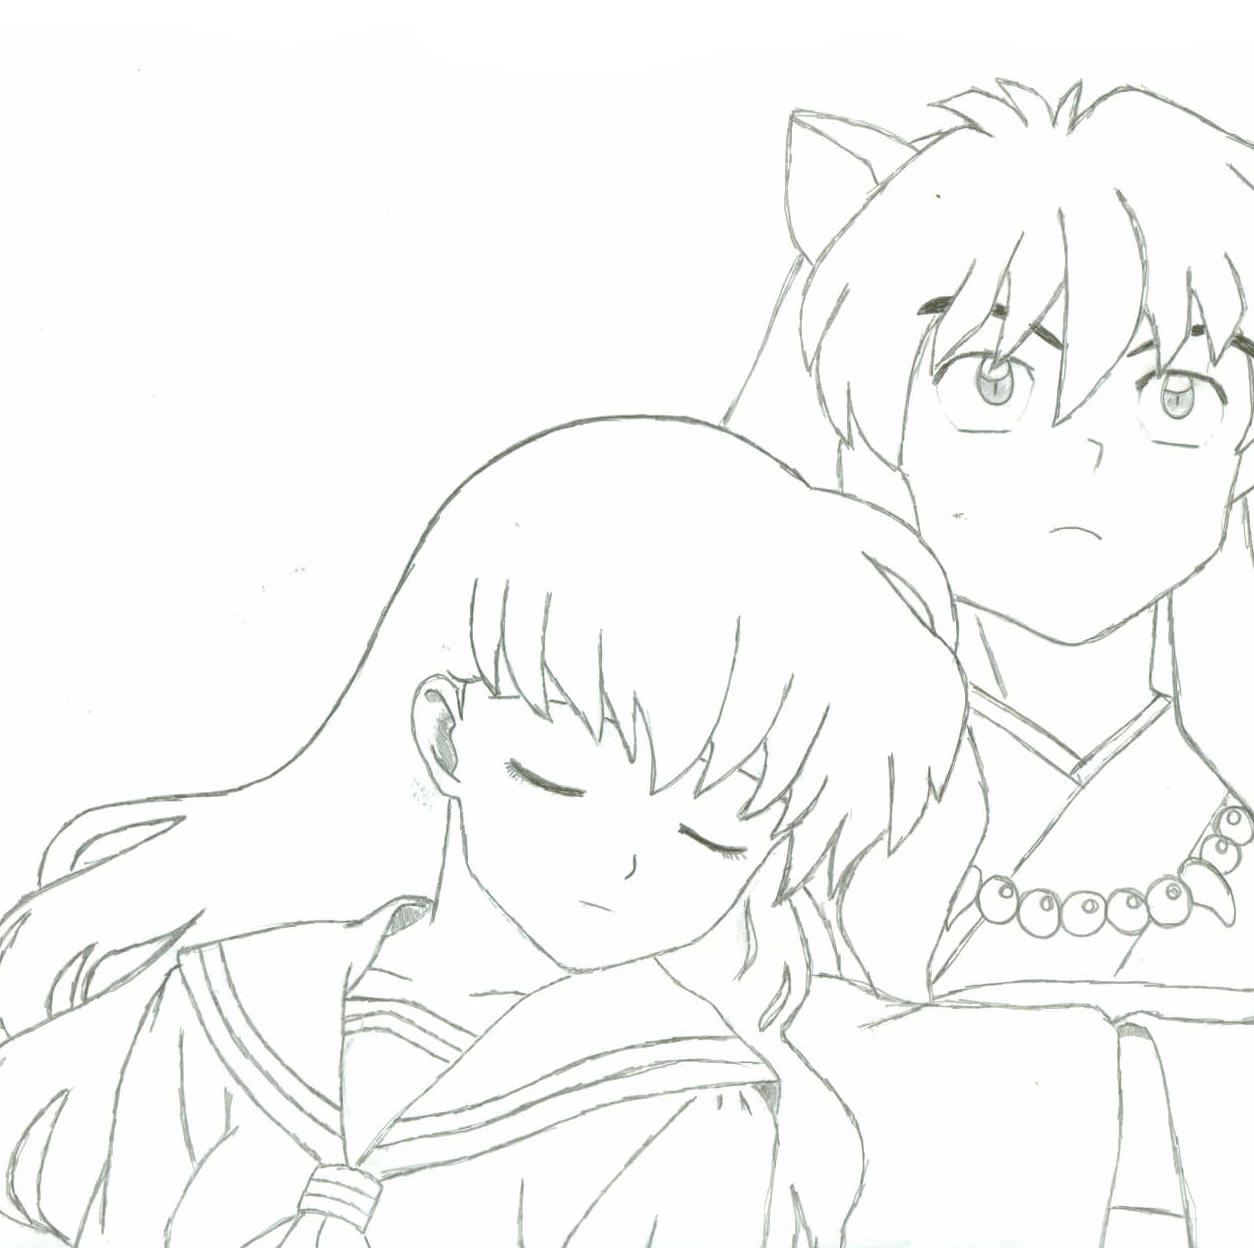 Inuyasha coloring book - Inuyasha And Kagome By Sexybluetoothbrush69 On Deviantart Download Image Inuyasha Coloring Book